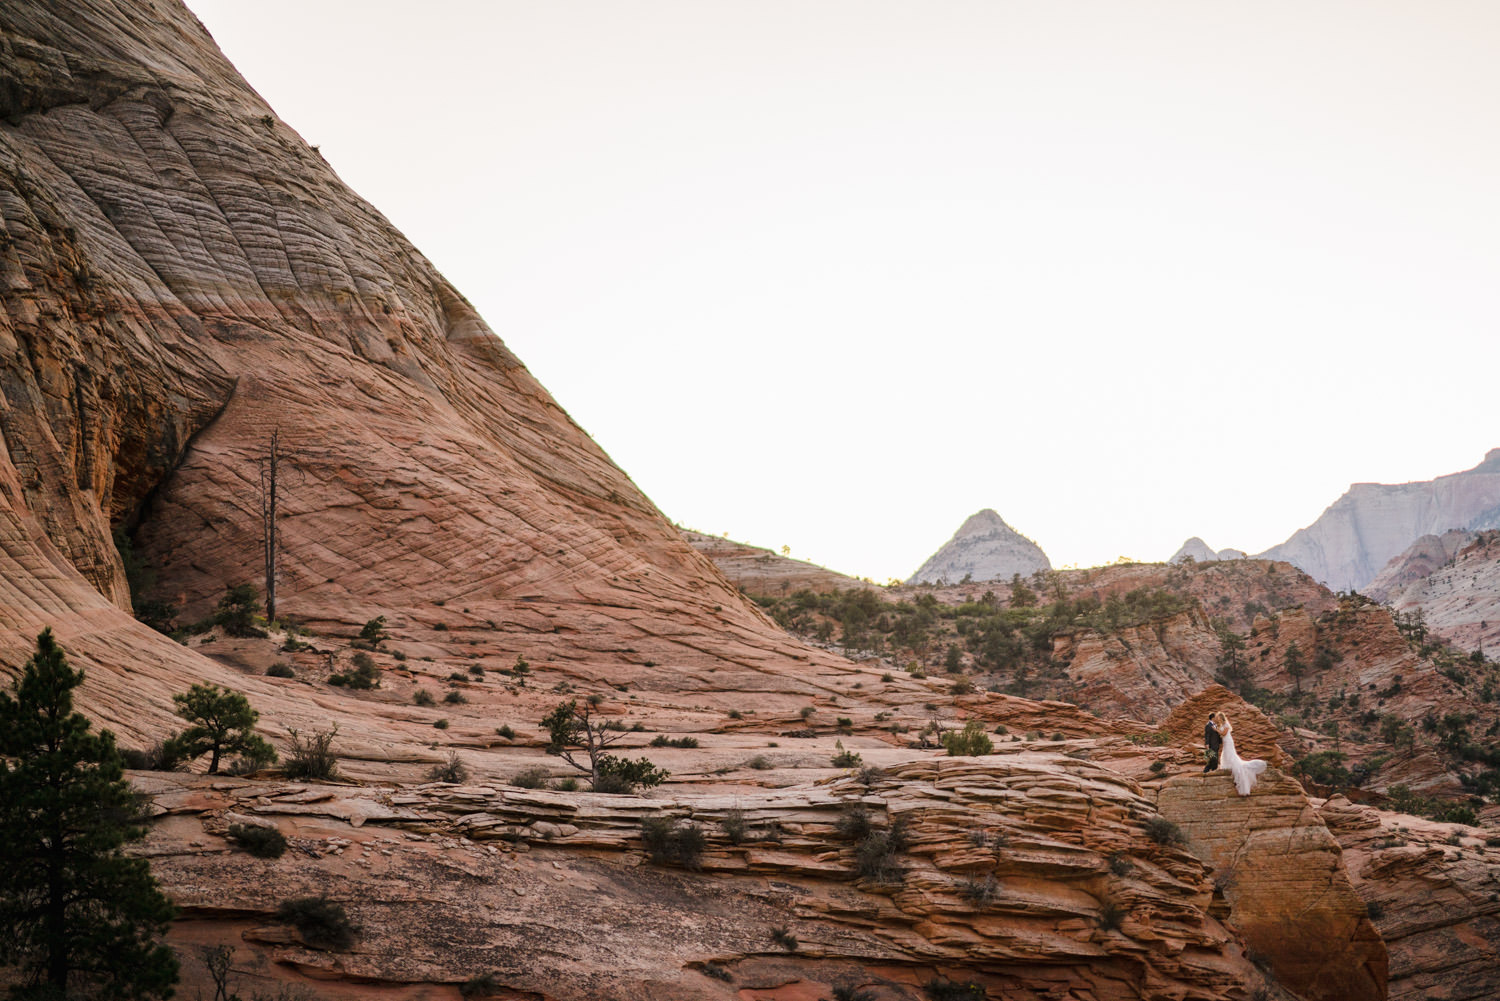 Zion National Park wedding rocky landscape with couple on rock perch photo